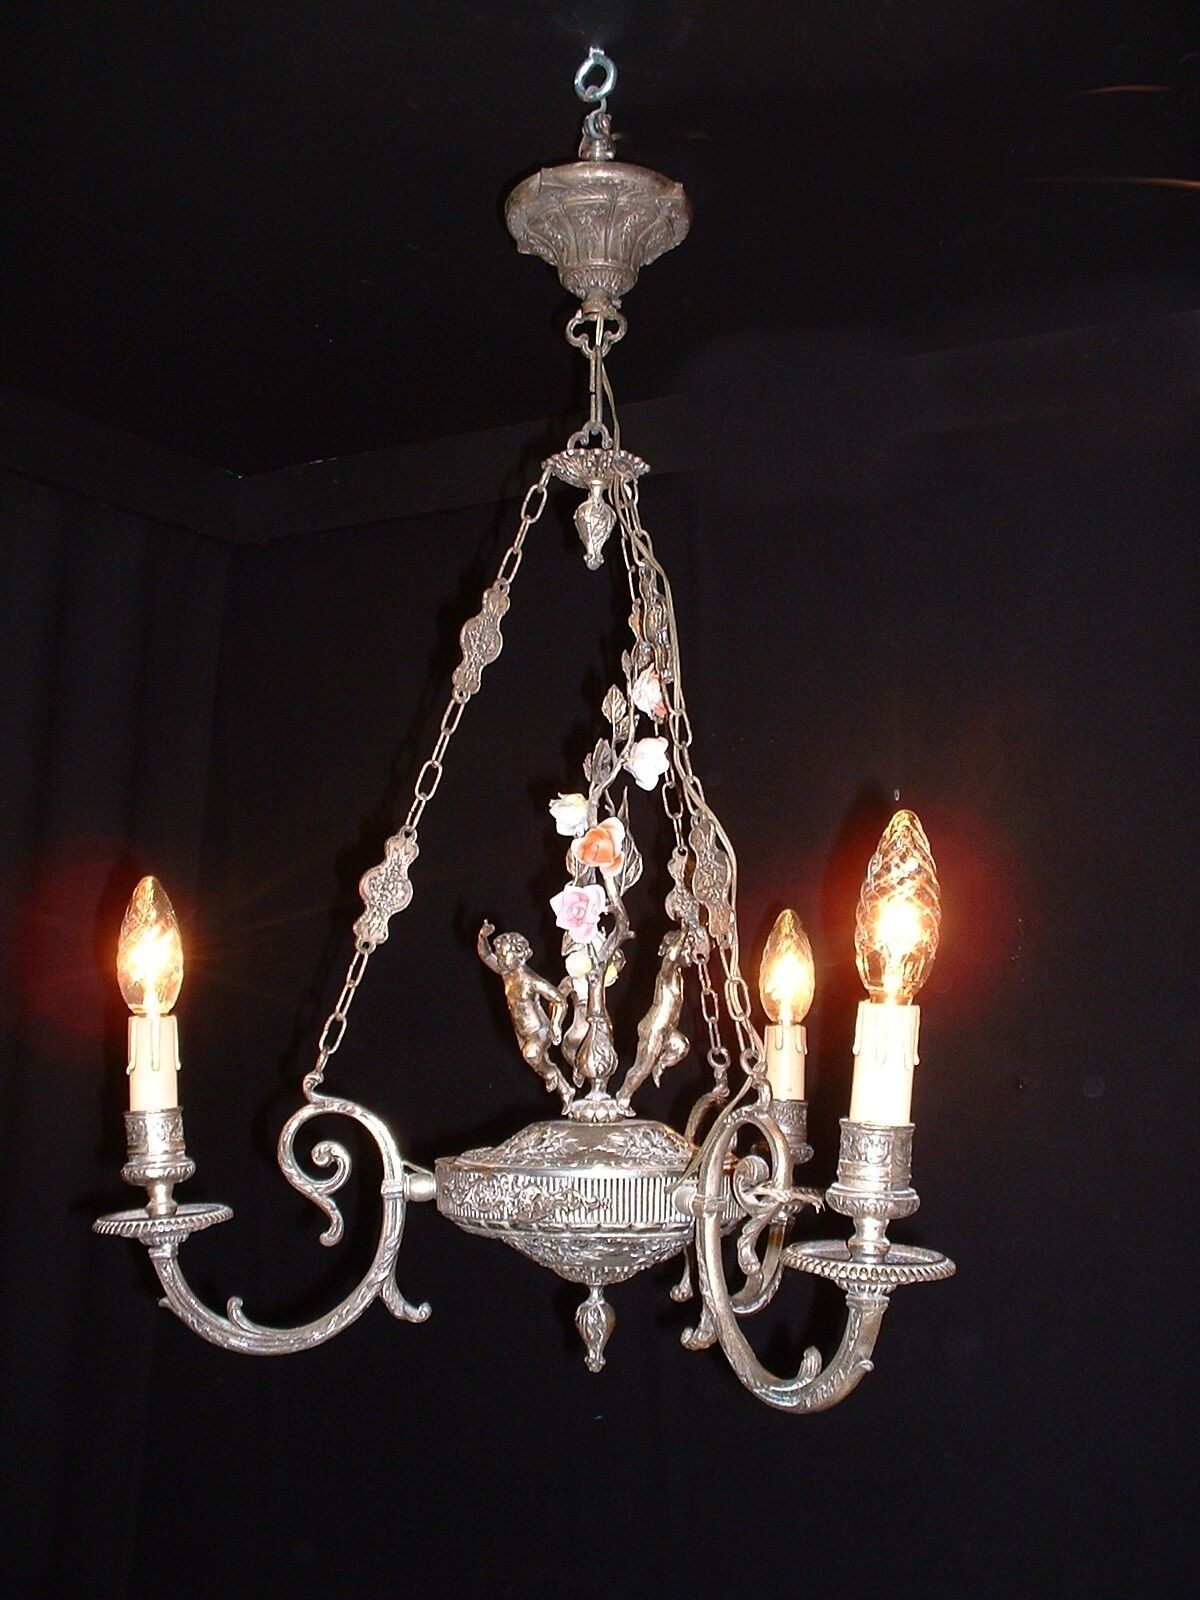 Old Incredible French bronze cherub chandelier,porcelain flowers, silver color